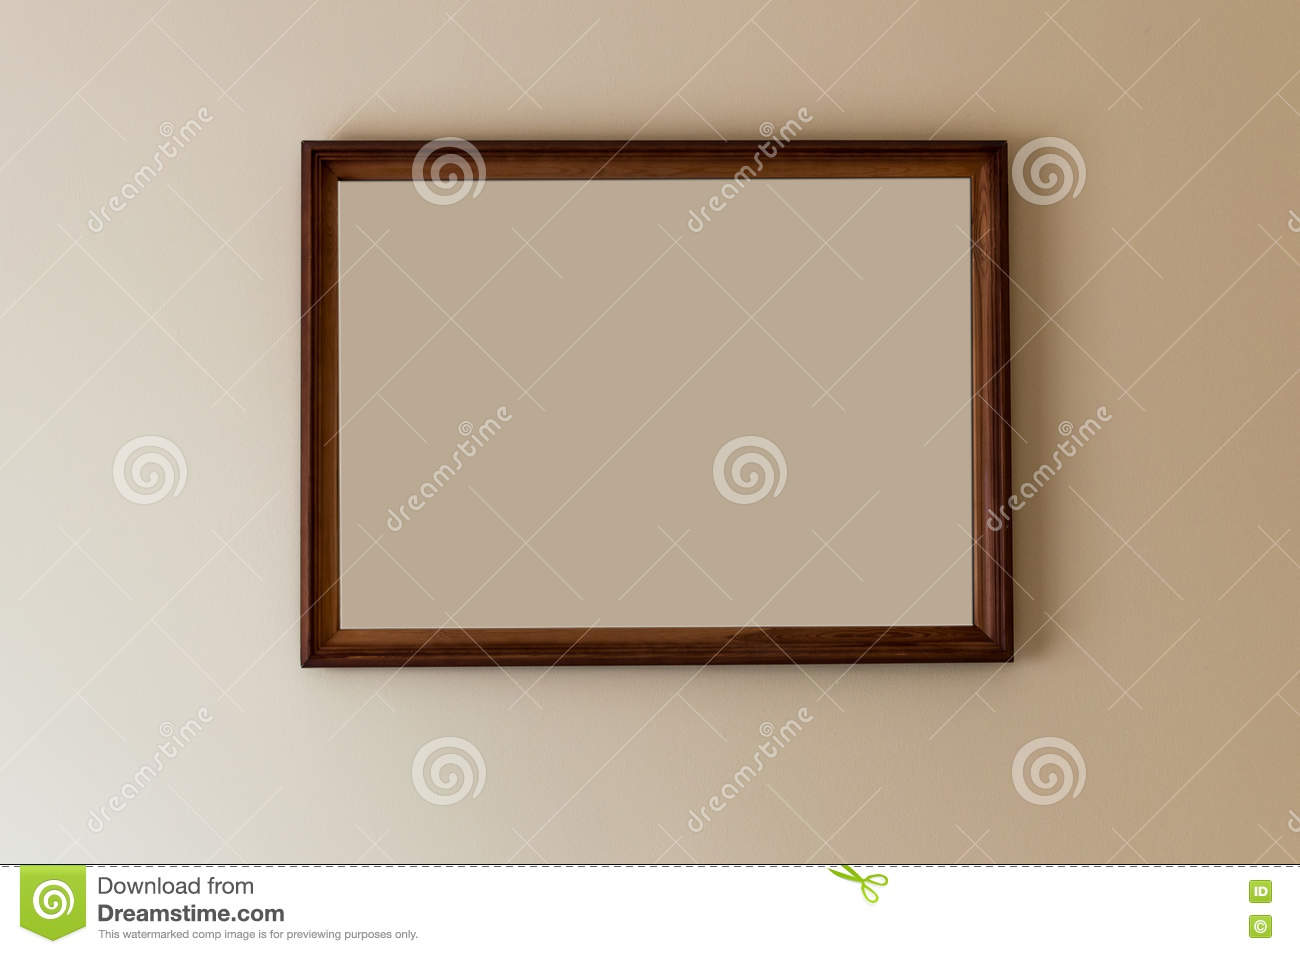 Frame hanging on a wall with empty space to write your text